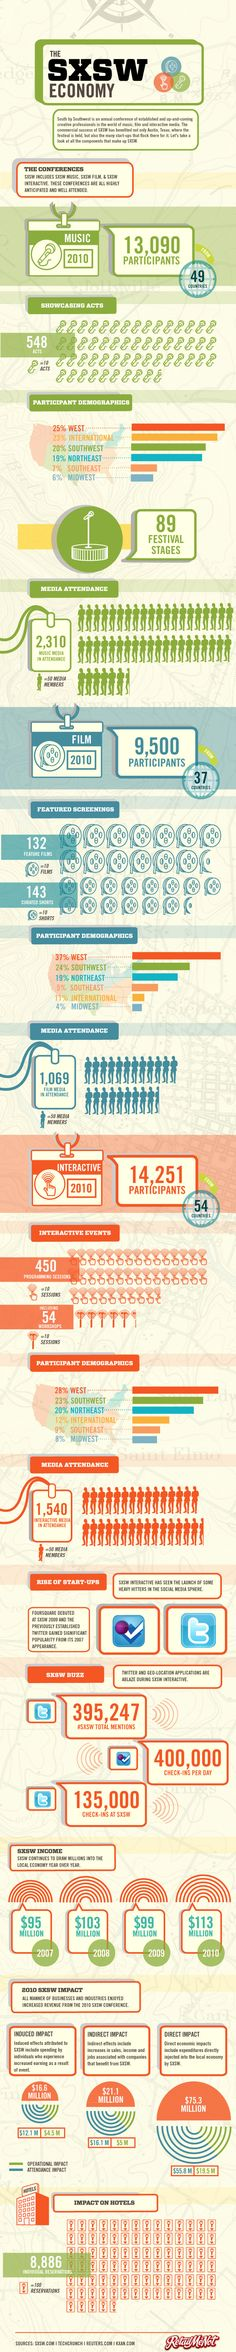 The SXSW #Infographic... a little dated, but still interesting.